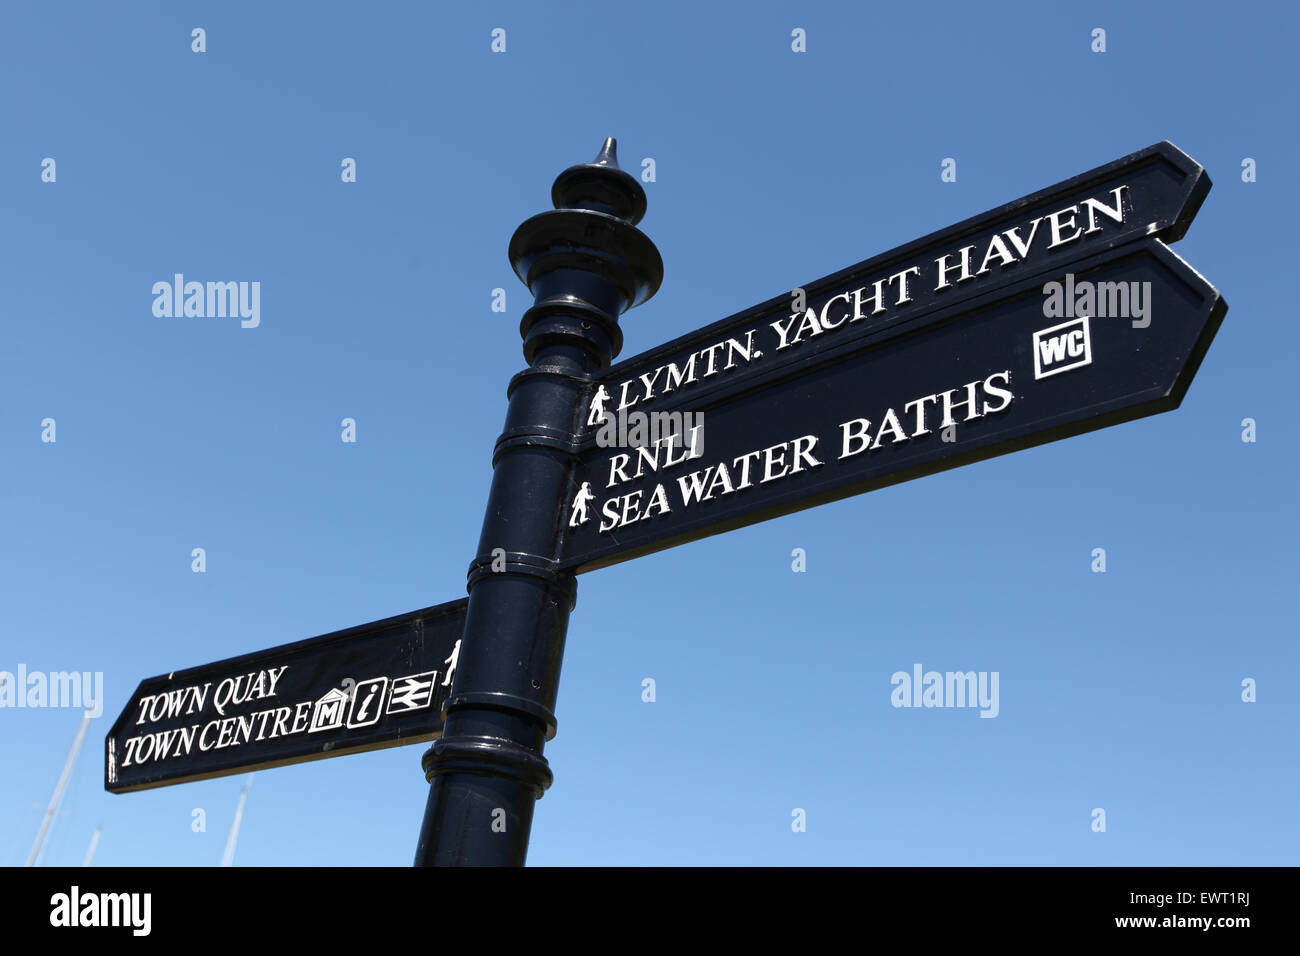 Traditional street sign in Lymington UK directing to Lymington town Quay Town Centre and the Yacht Haven - Stock Image